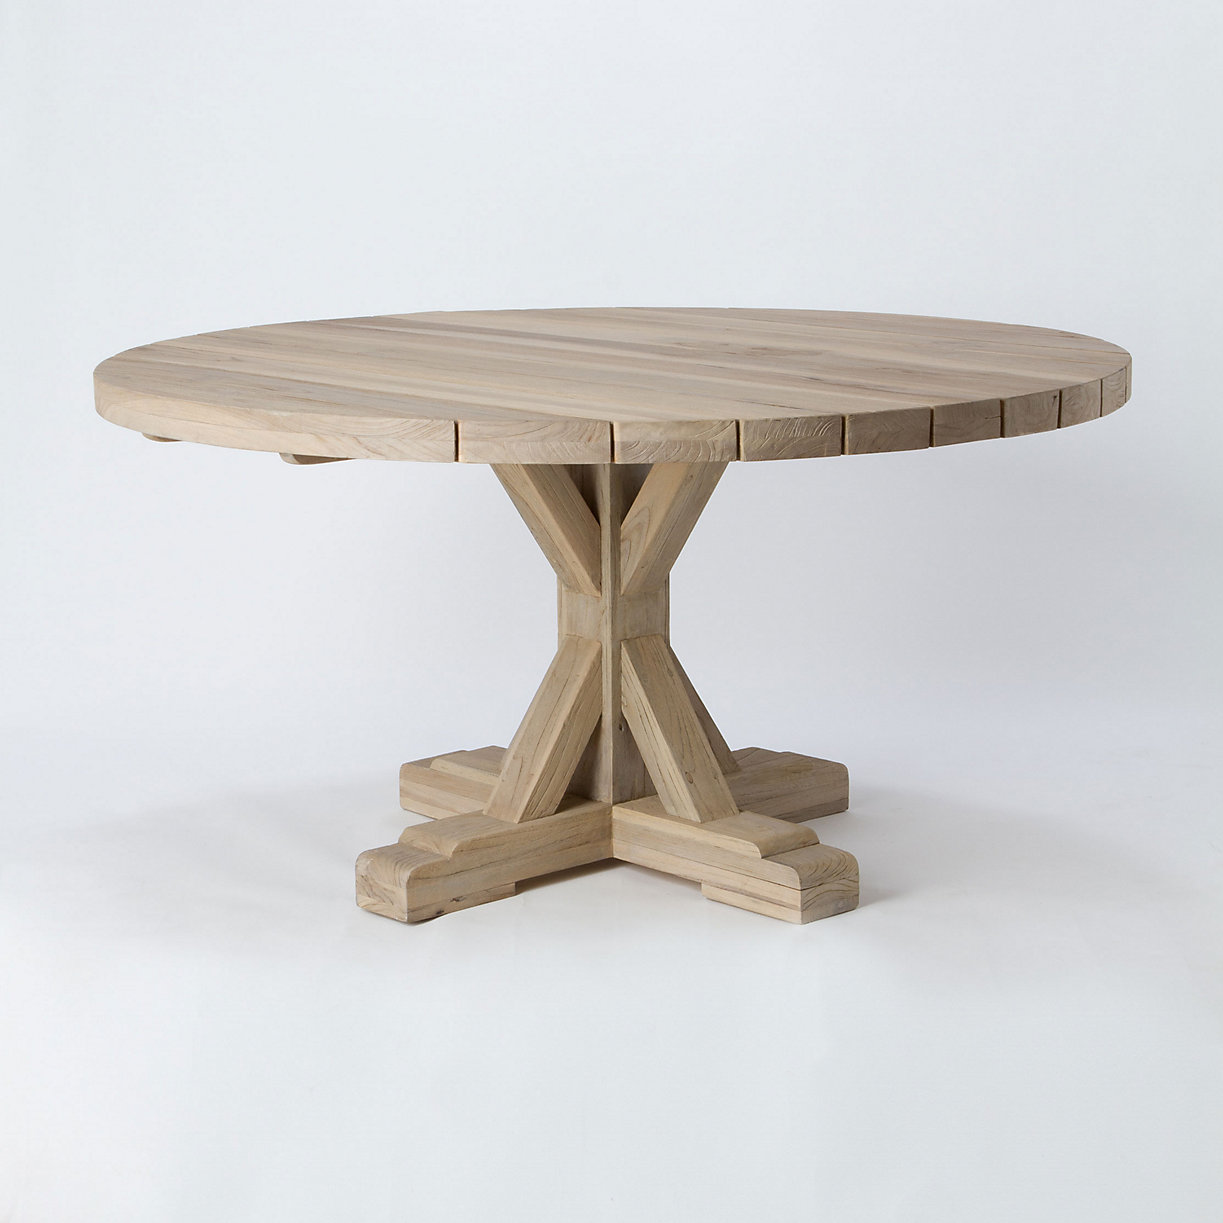 Preserved teak dining table round terrain for Round teak outdoor table